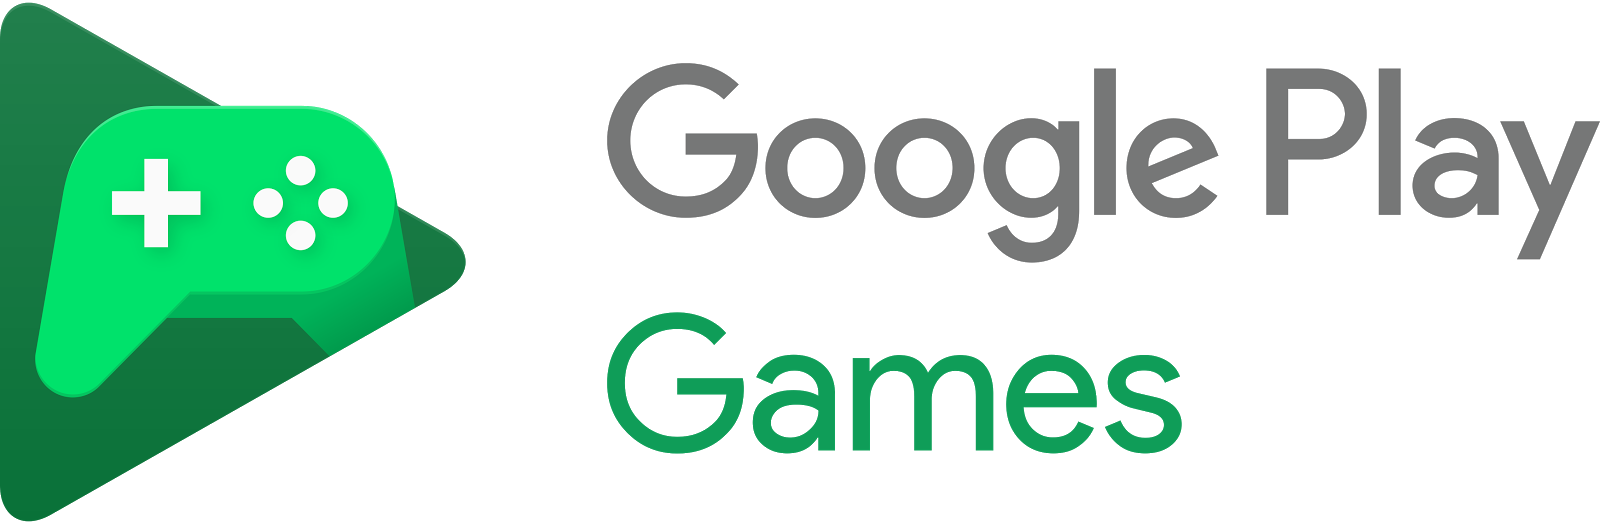 Carrier Billing Google Play Store